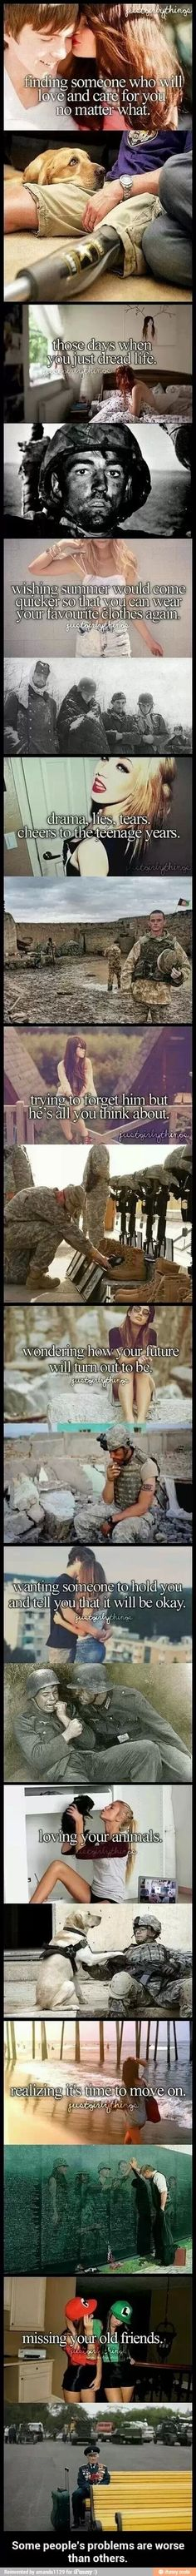 yes, but keep in mind that you don't have to be a soldier to fight a battle. what seems a small feat to one may be huge to another. I do not know wartime, but I know hardship. be humble & kind, whoever you are. everyone has struggles.